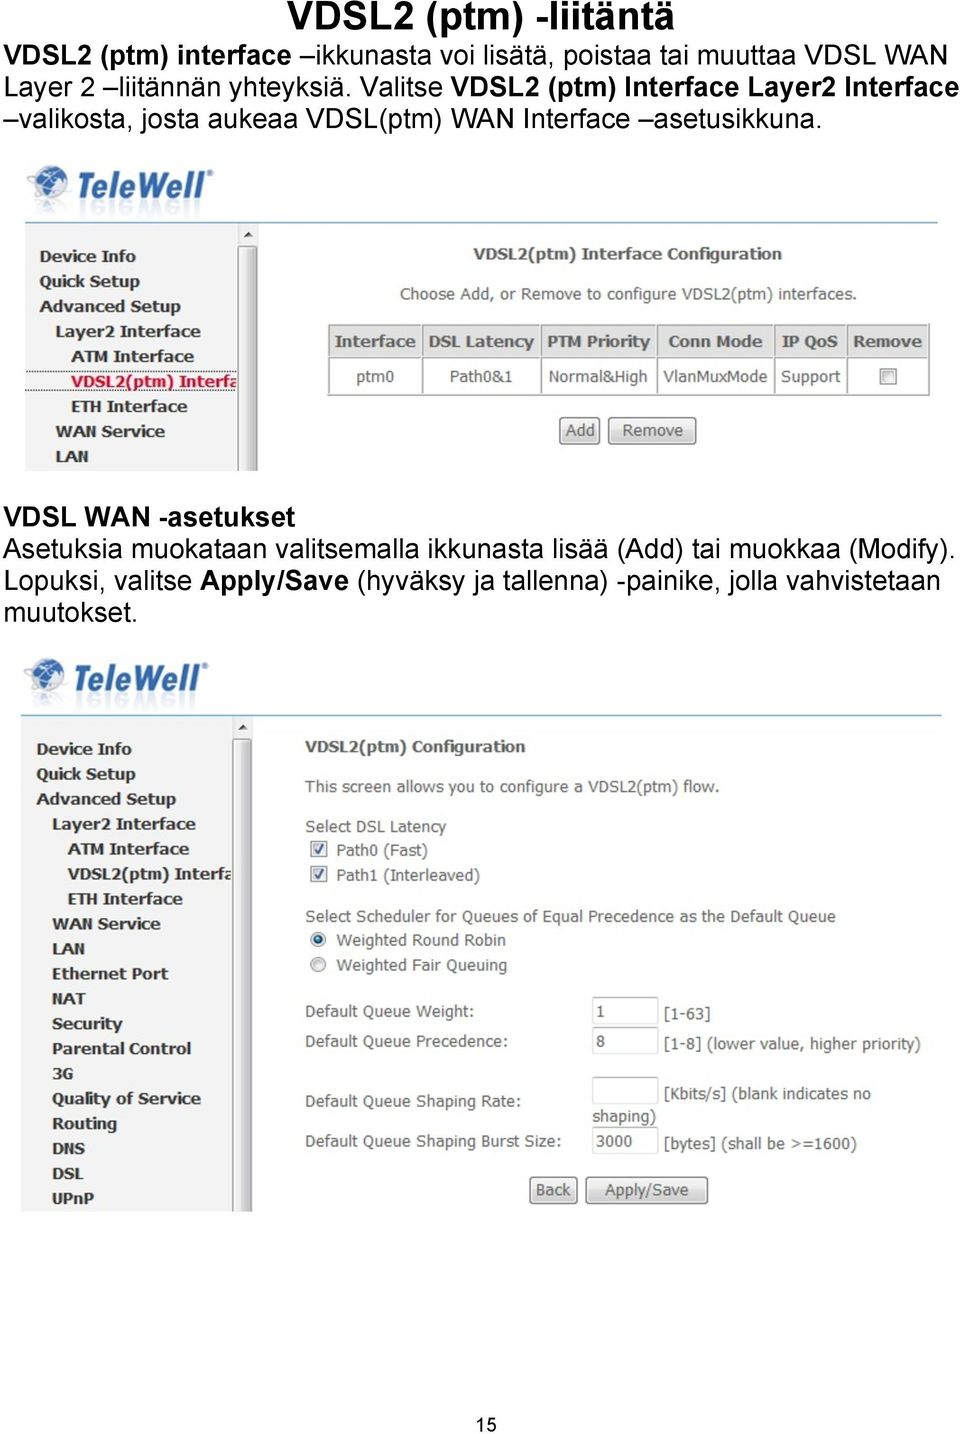 Valitse VDSL2 (ptm) Interface Layer2 Interface valikosta, josta aukeaa VDSL(ptm) WAN Interface